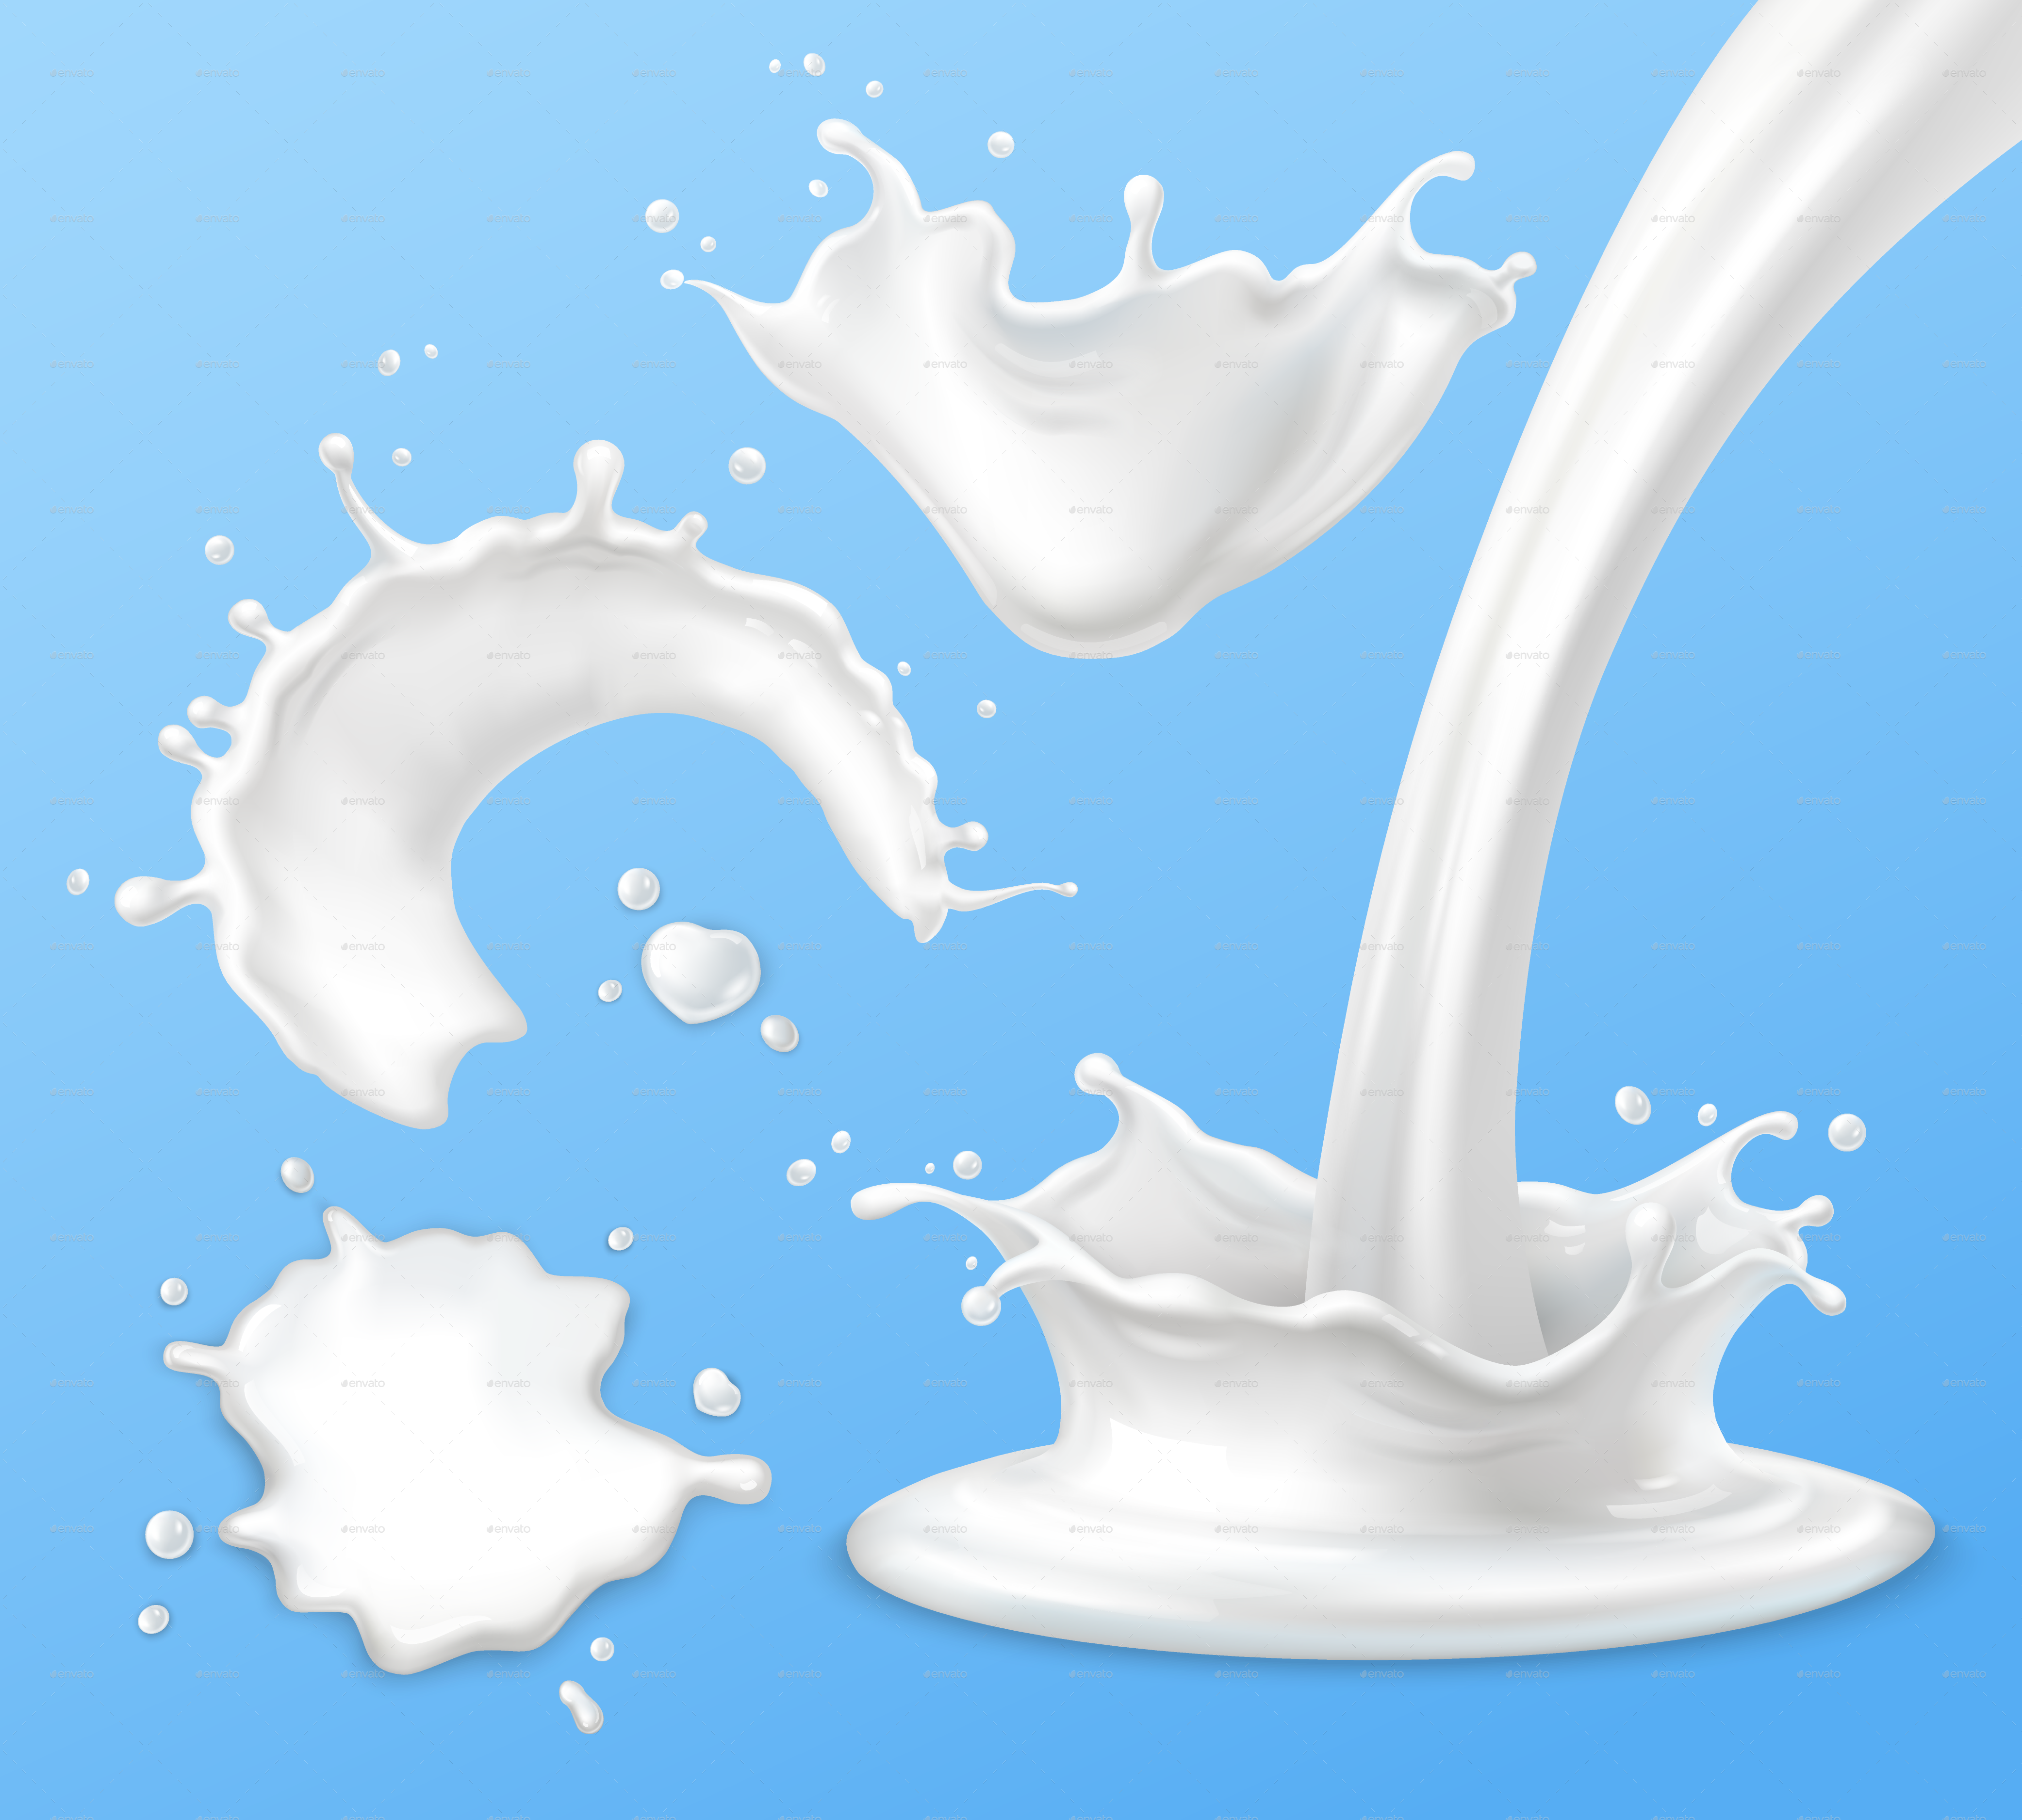 Milk Splashes, Drops and Blots by Mia_V | GraphicRiver